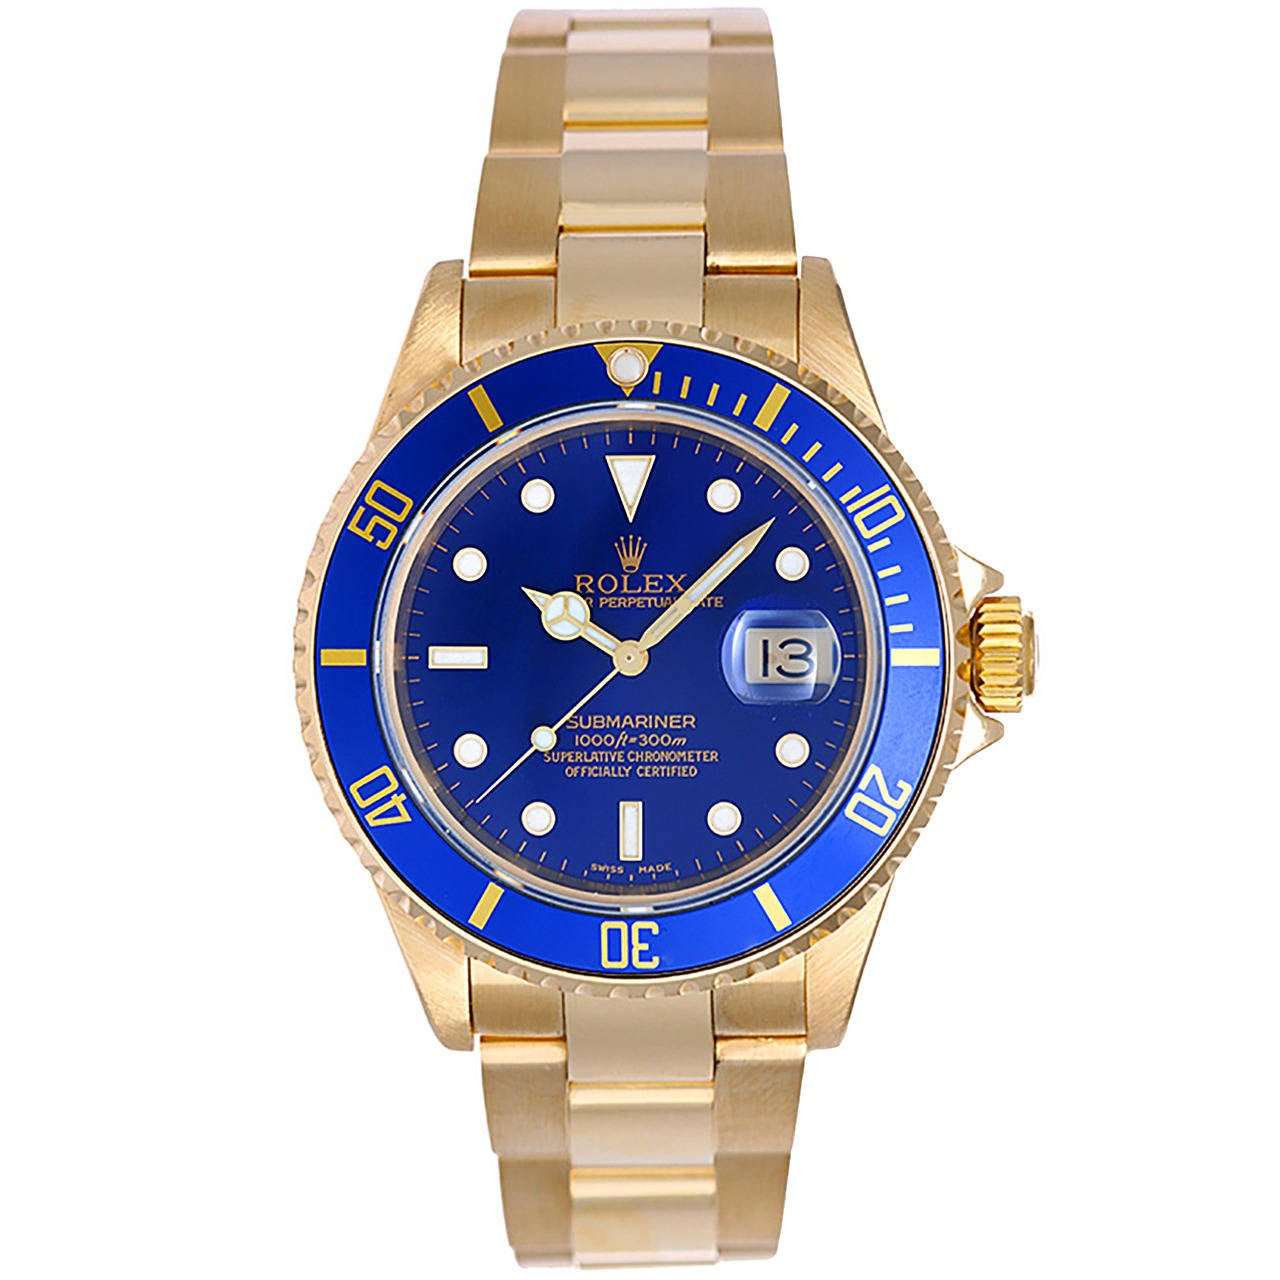 Rolex Yellow Gold Submariner Blue Dial Wristwatch Ref 16618 For Sale